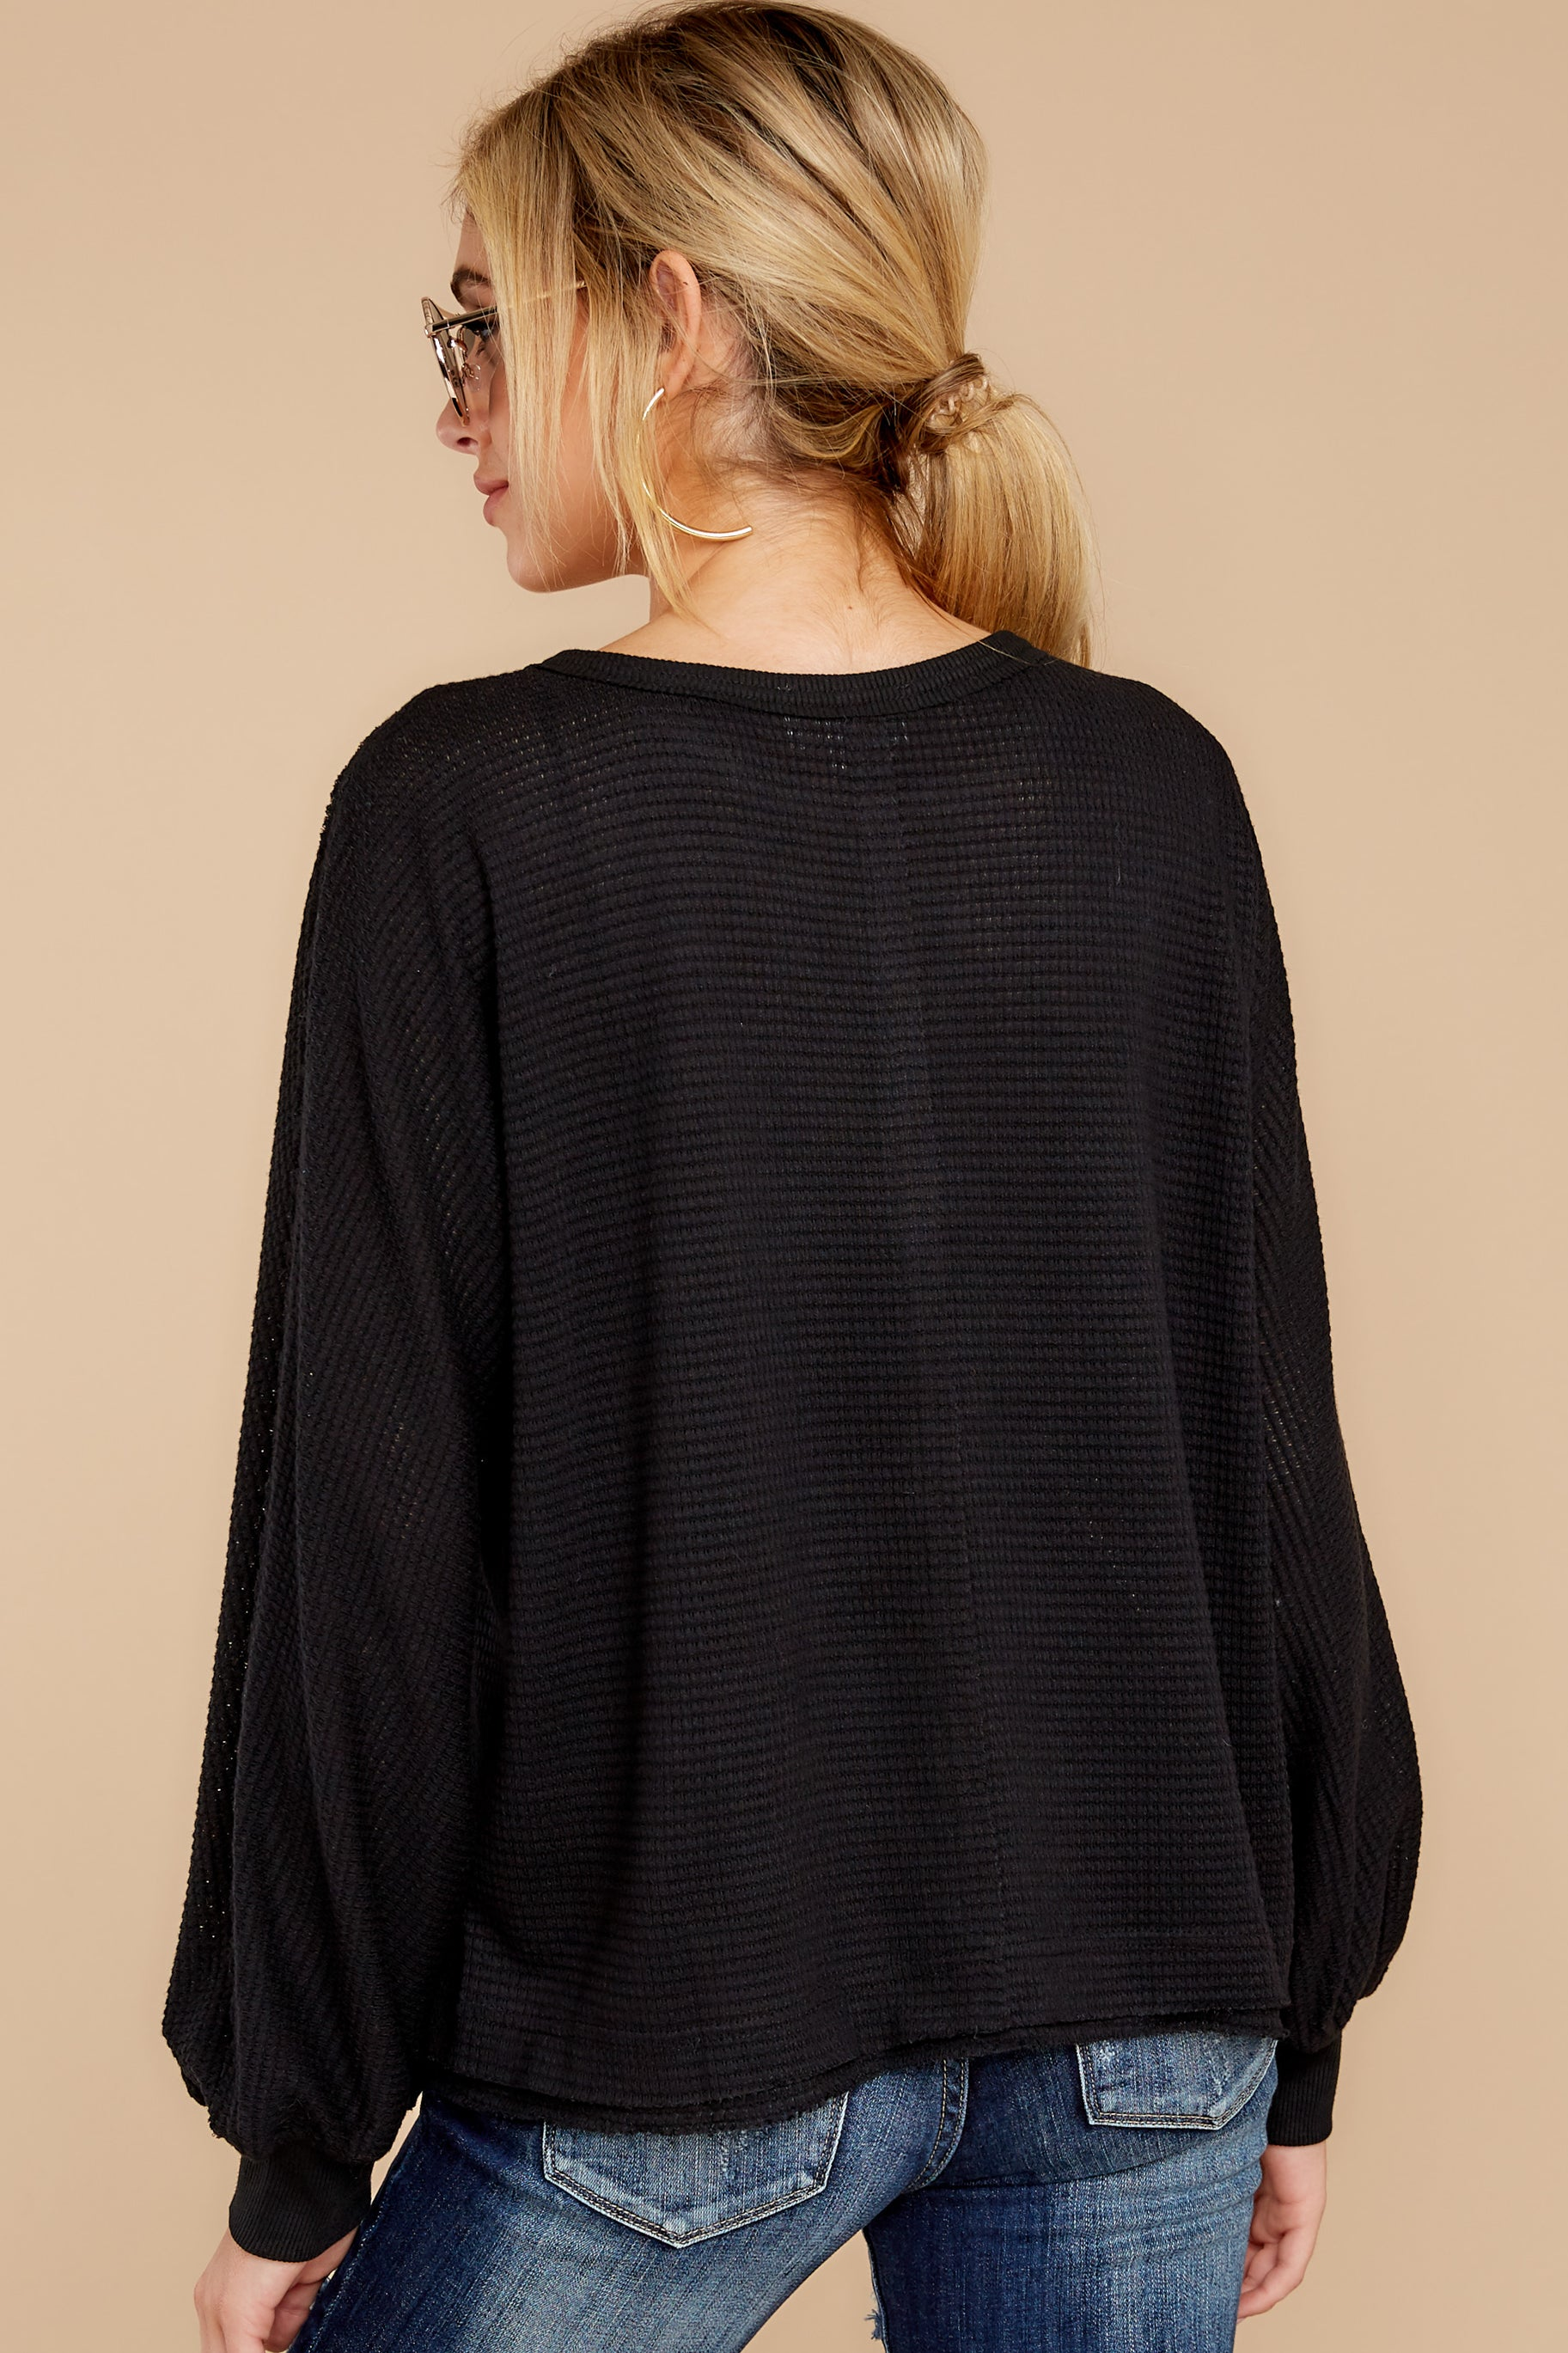 9 Gotta Be Real Black Waffle Knit Sweater at reddressboutique.com